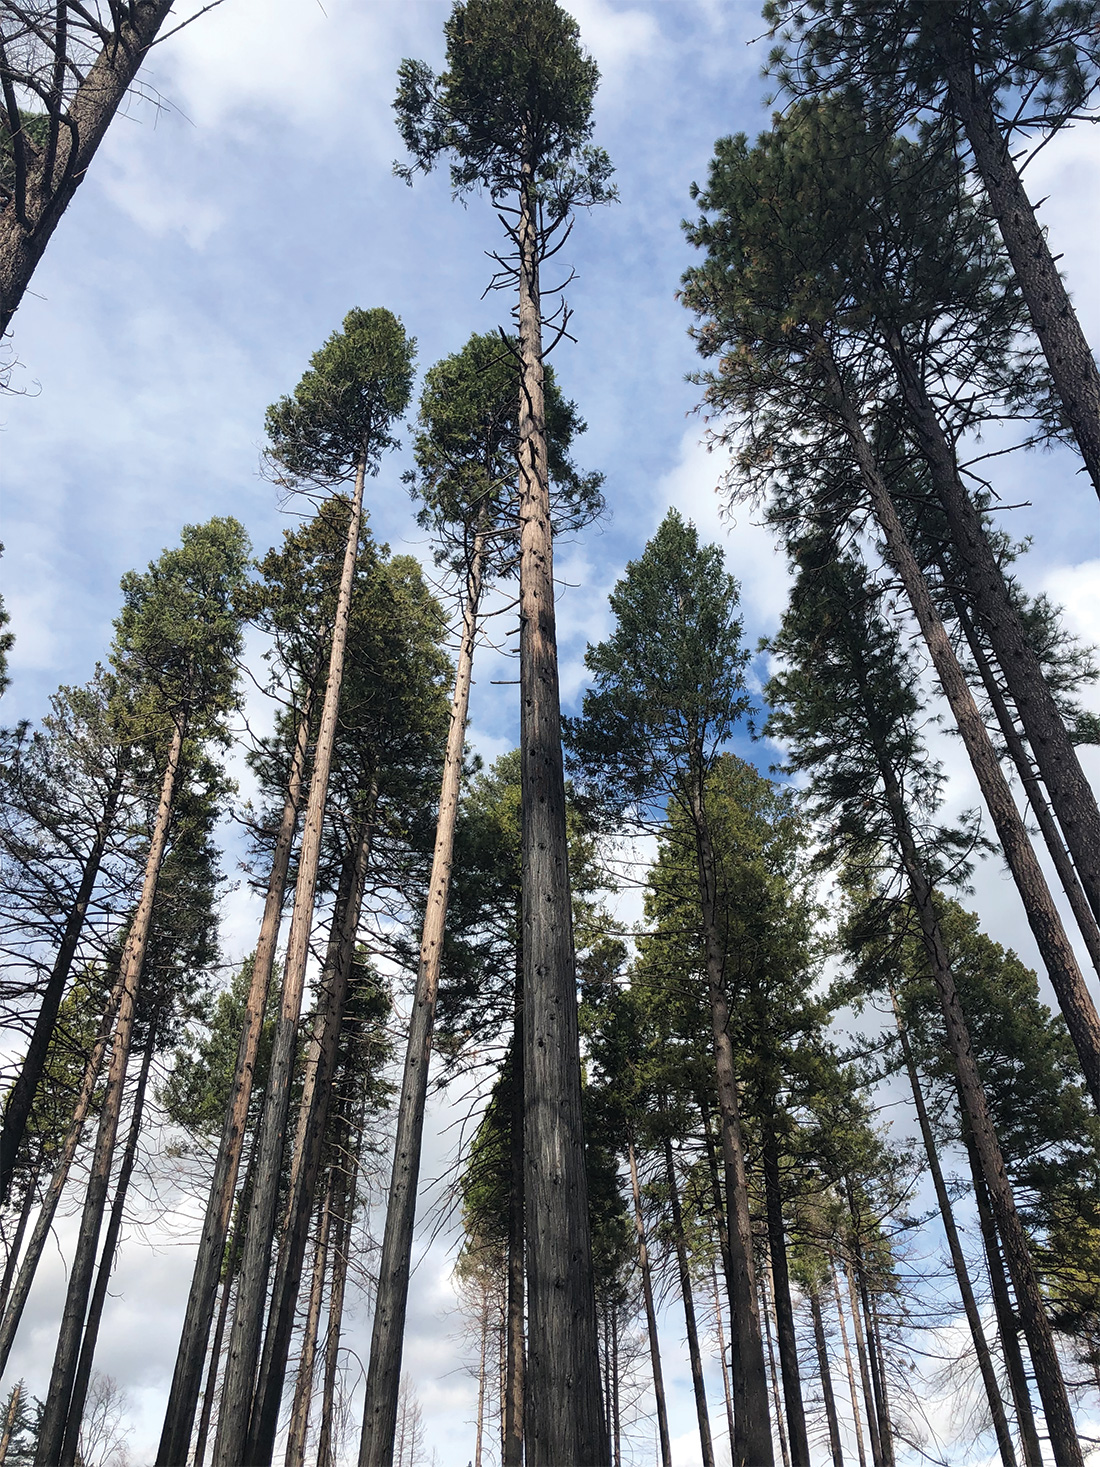 These incense cedars survived the Camp Fire. They grew up together and developed the tall lollipop shape because they were racing each other to reach sunlight. Having all their needles at the top, with bare trunks most of the way down, likely helped them survive the fire.